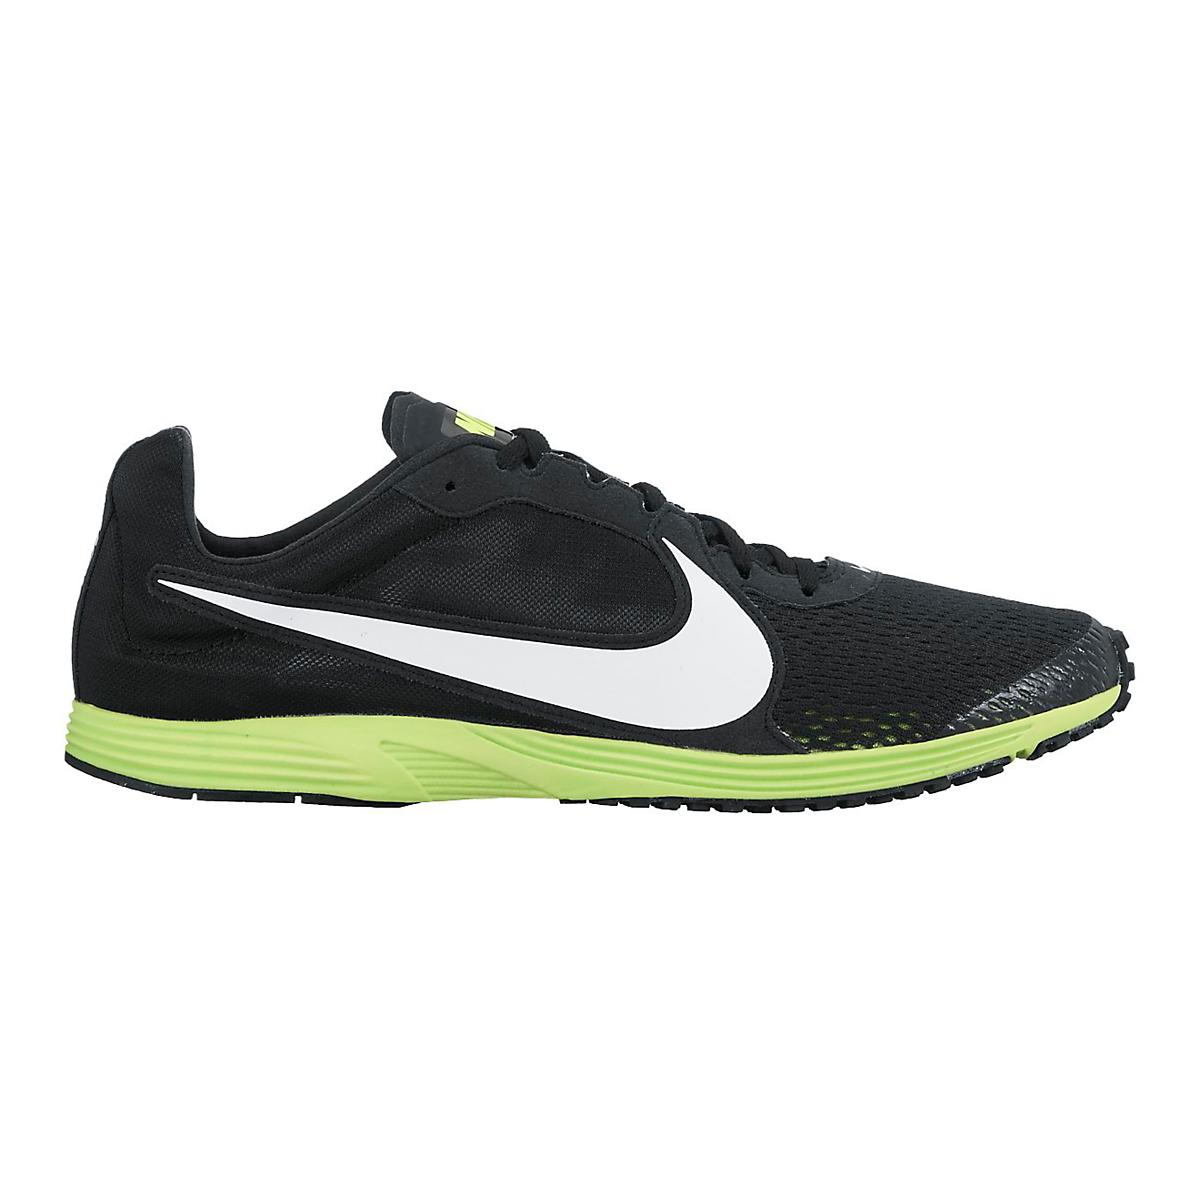 Nike Zoom Streak LT2 Racing Shoe at Road Runner Sports 4dd7acc53